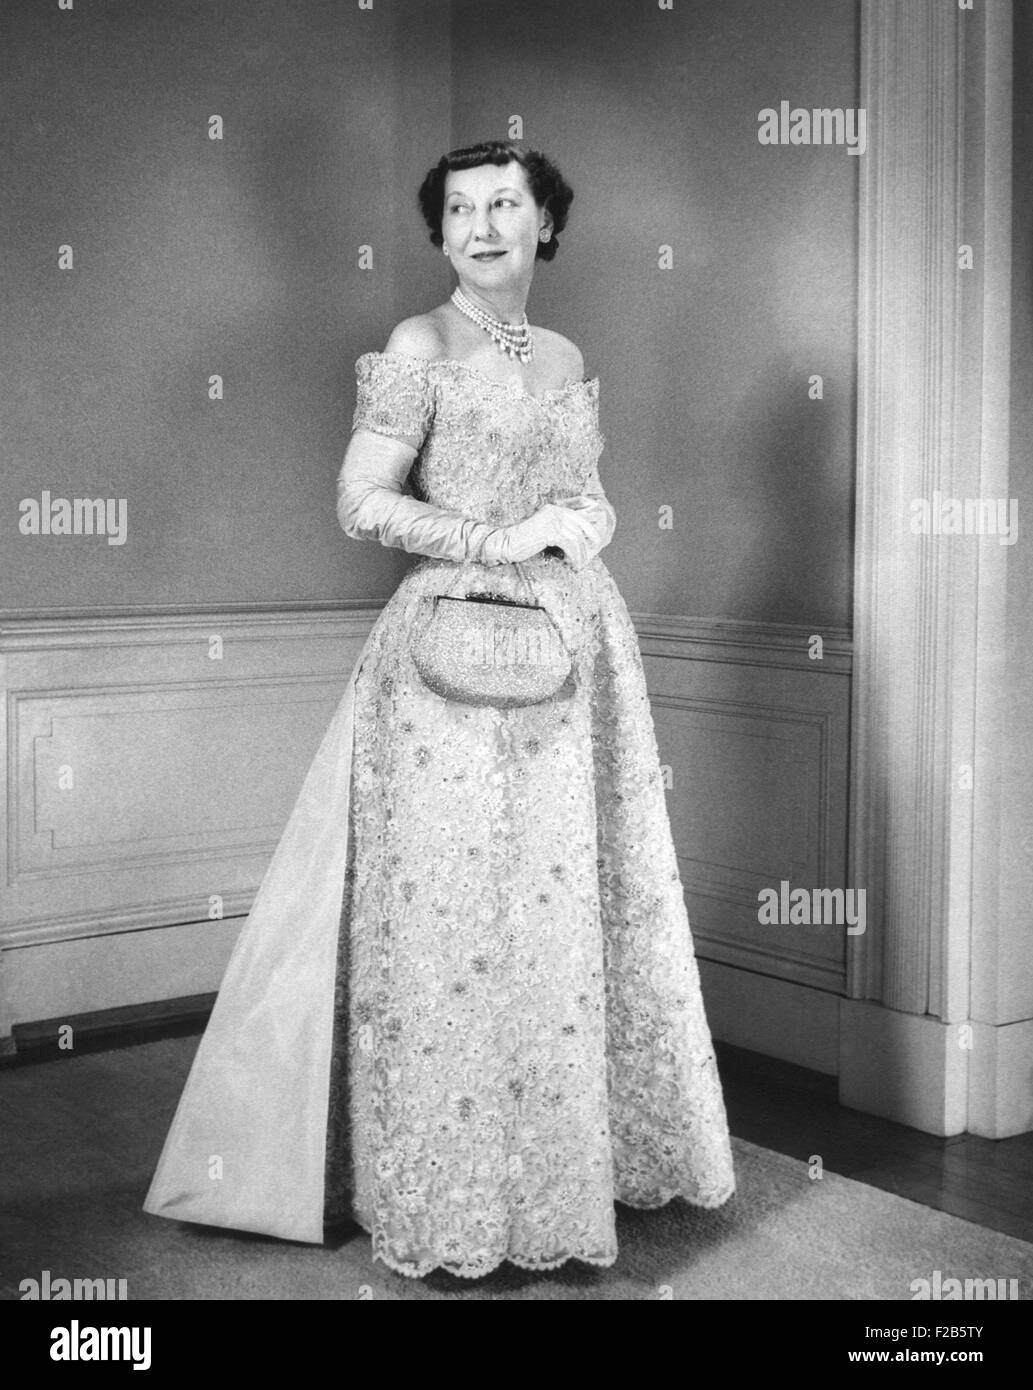 Evening Gown 1950s Stock Photos & Evening Gown 1950s Stock Images ...